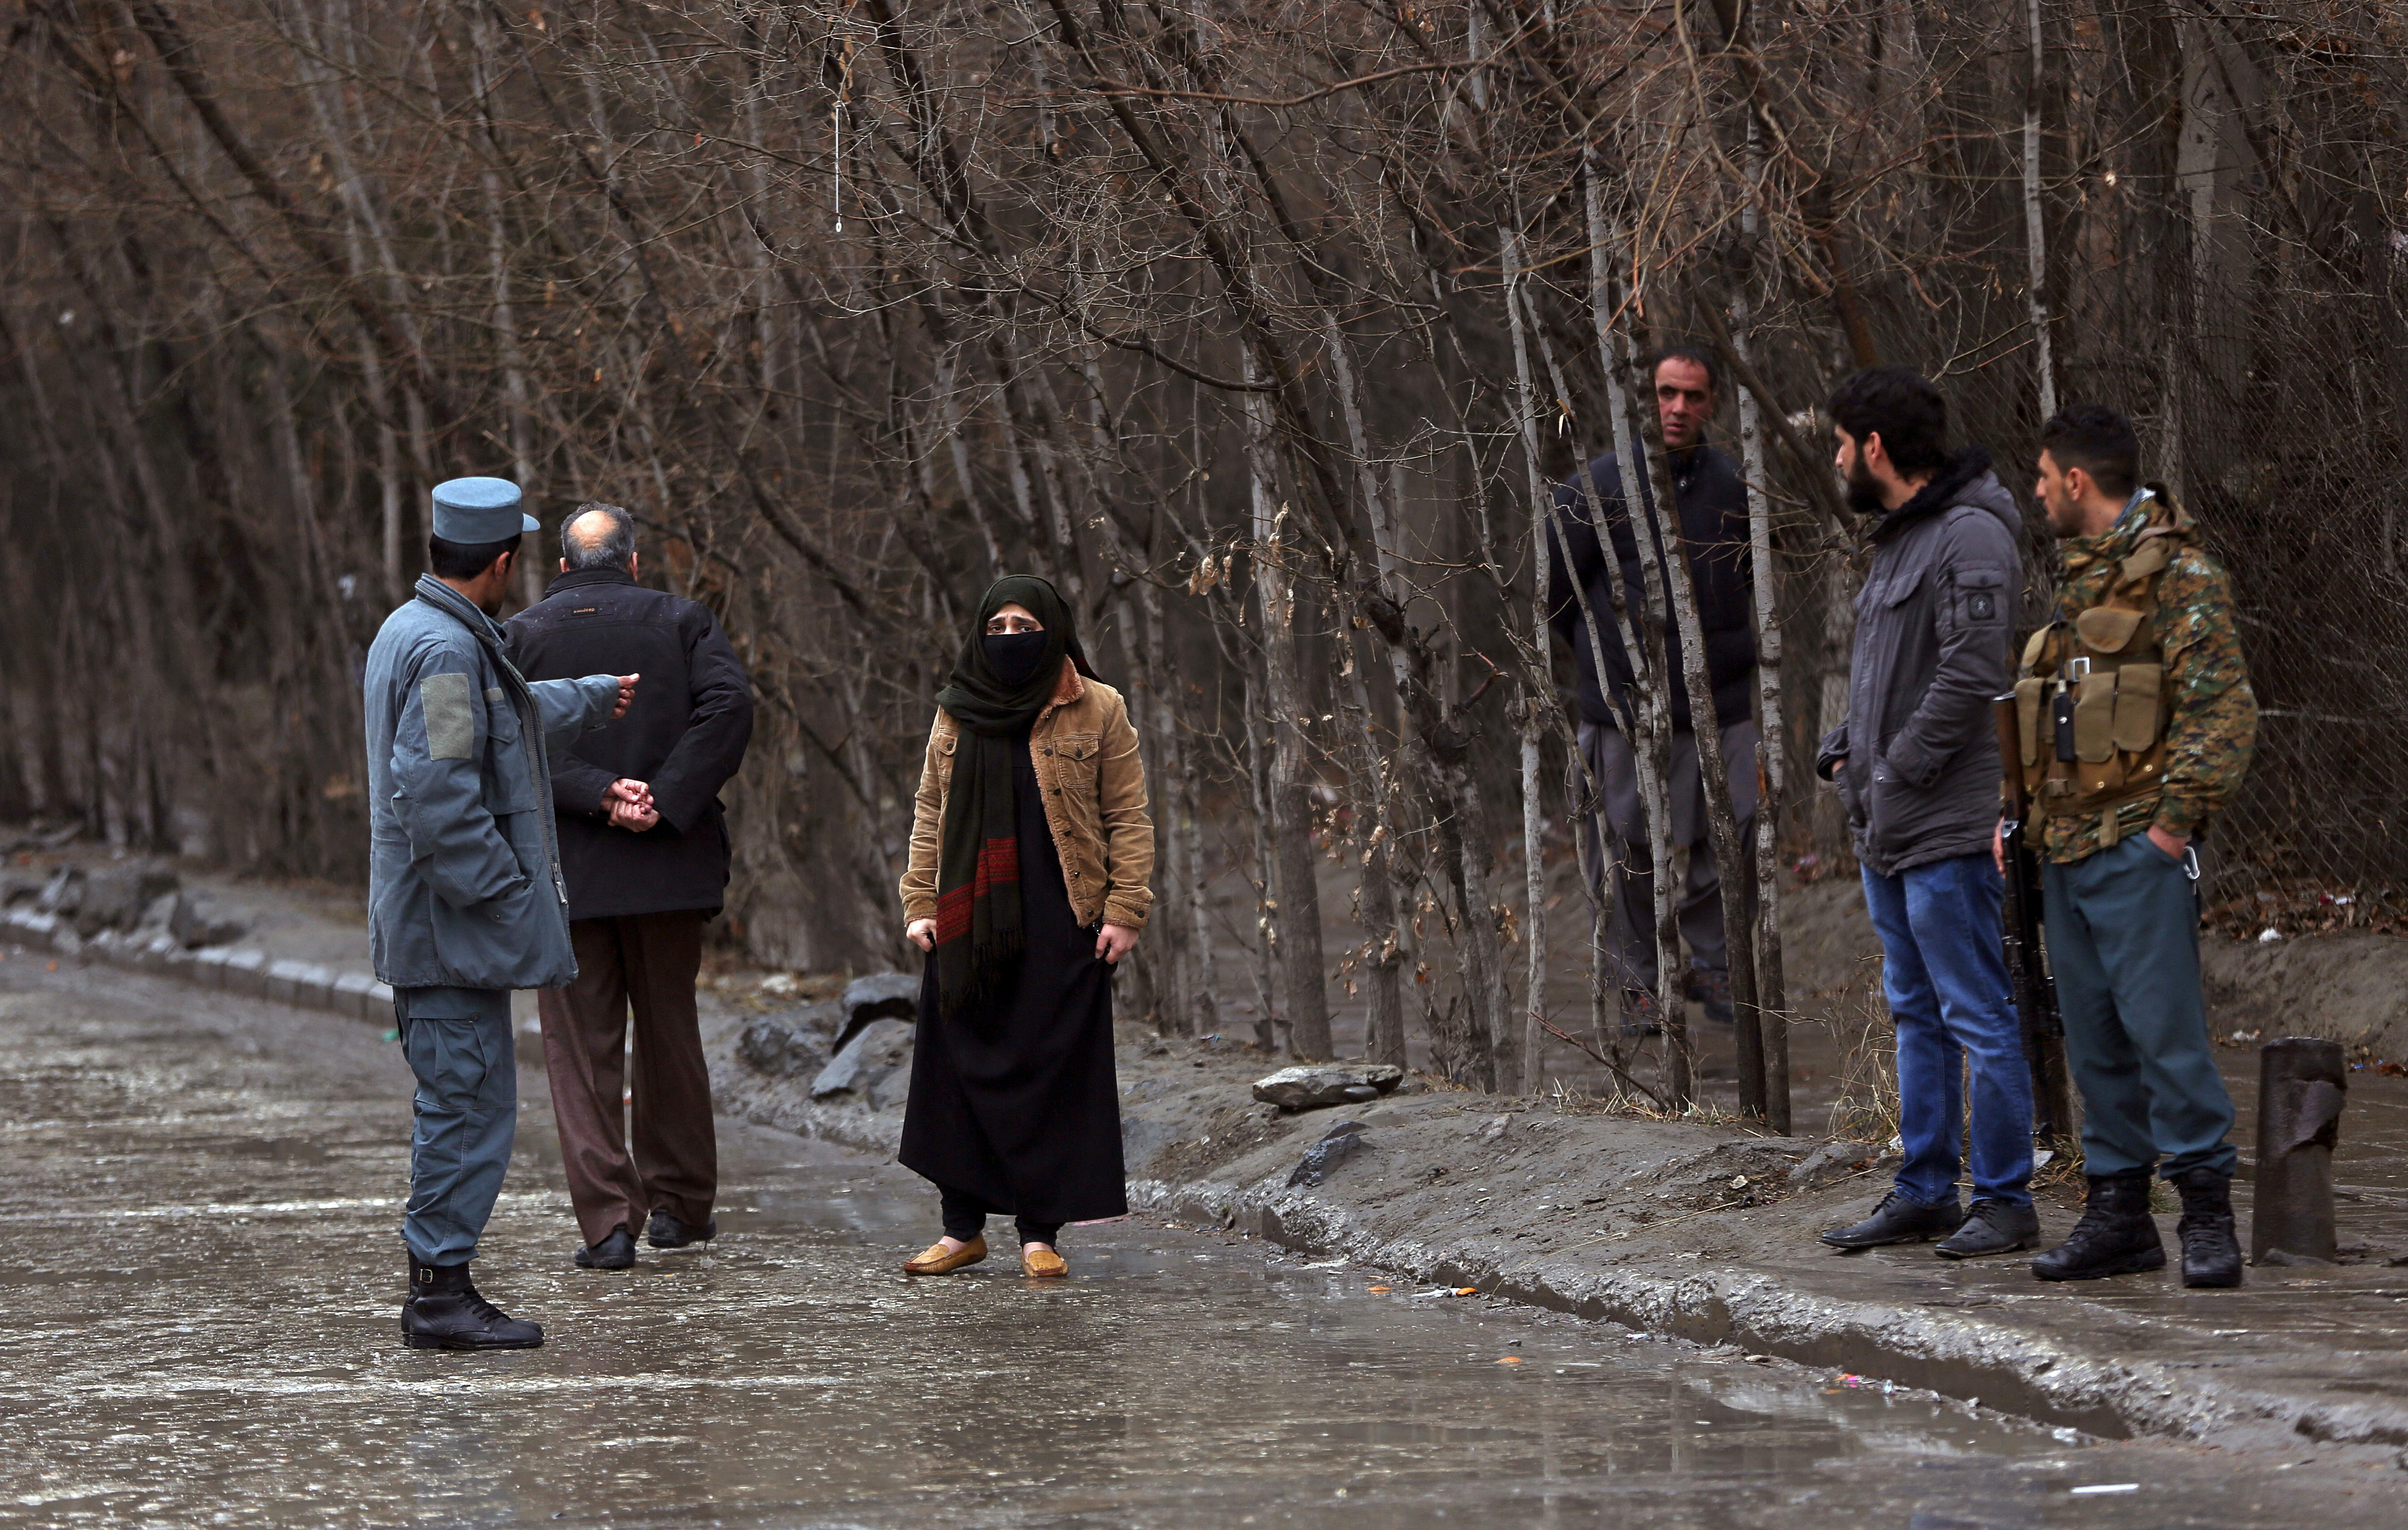 A woman talks with a police officer as her relative was at site of a suicide bombing in the diplomatic area of capital Kabul, Afghanistan, Saturday, Feb. 24, 2018. Interior ministry spokesman Najib Danish said several people were wounded in Saturday's attack in the Shash Darak area of Kabul, near NATO headquarters and not far from the U.S. Embassy. (AP Photo/Massoud Hossaini)